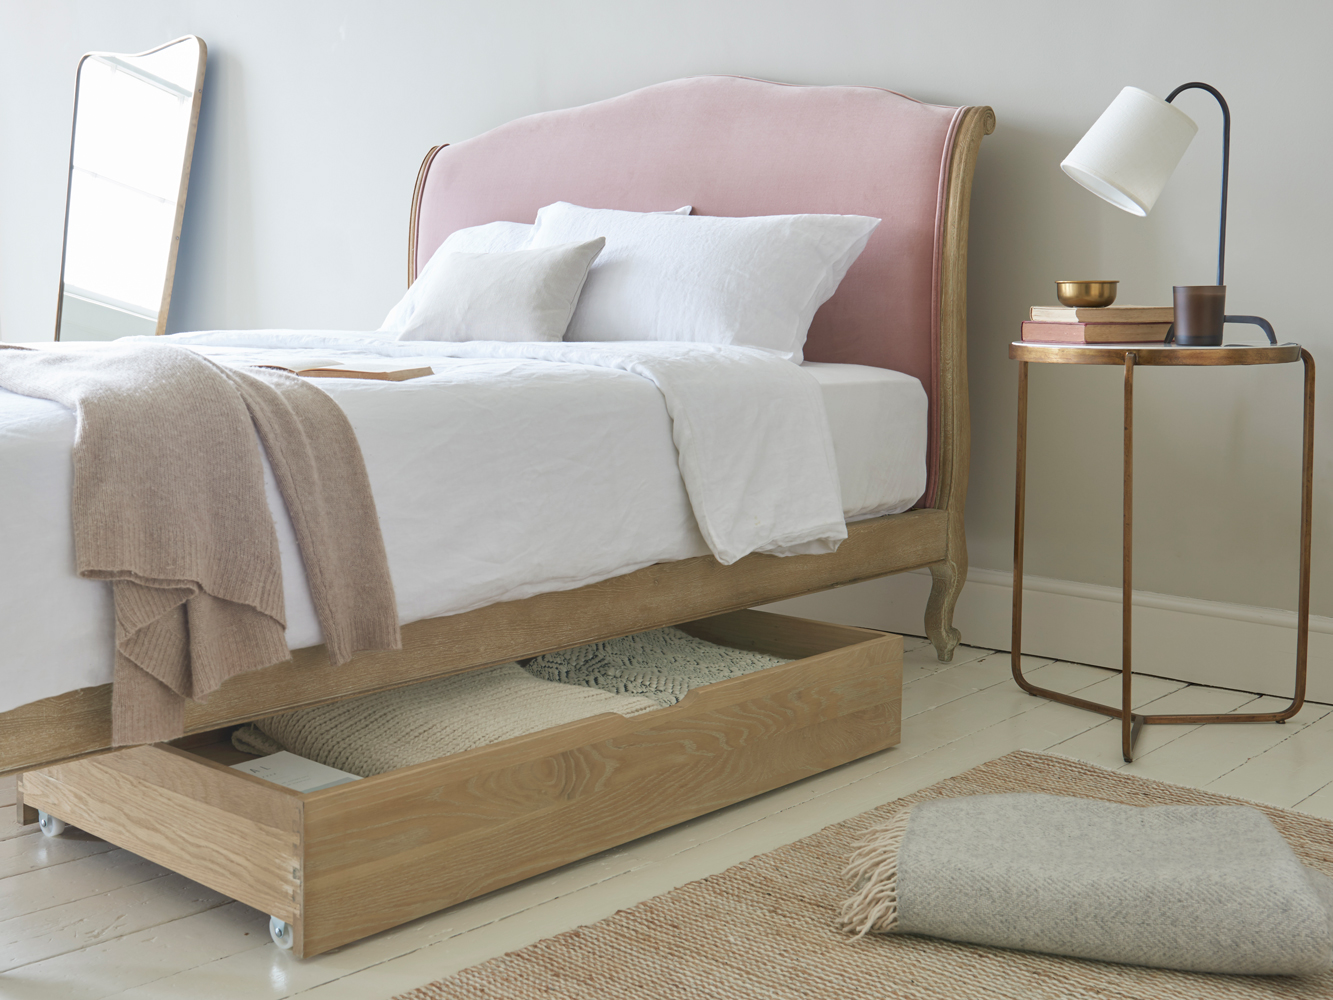 Picture of: How to Build a Bed with Underbed Storage